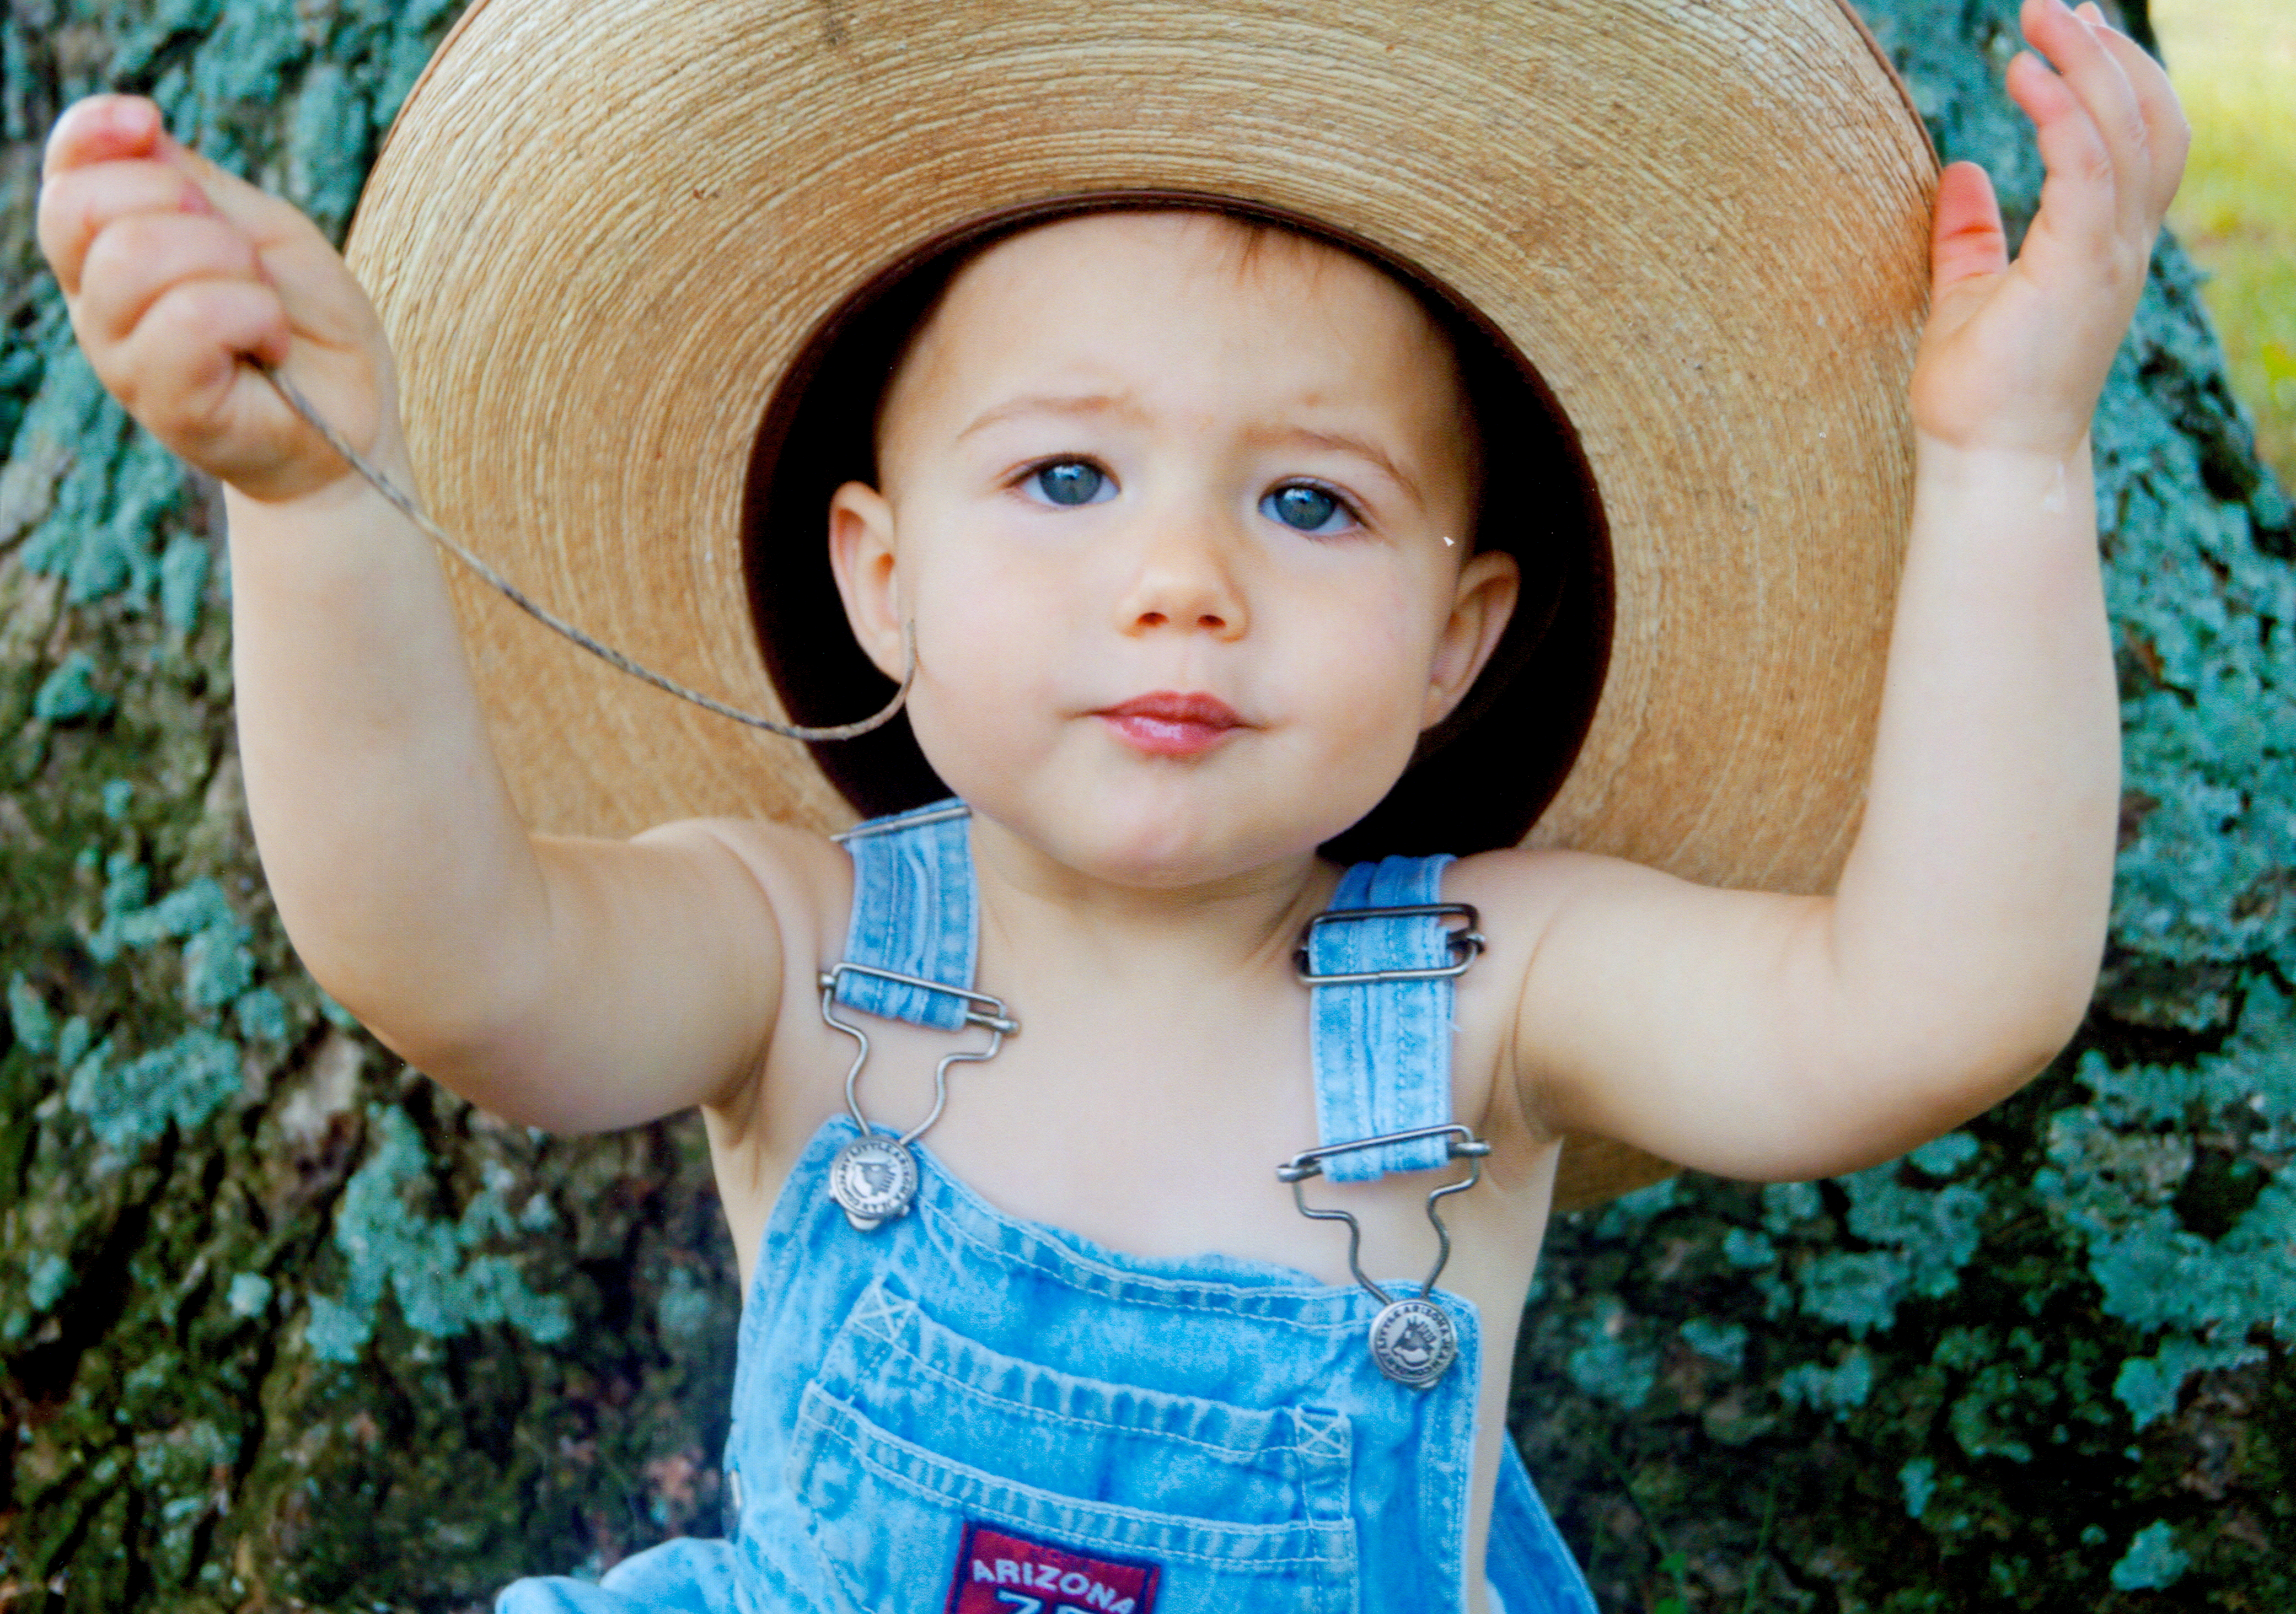 Jett. 1-year-old from Siloam Springs